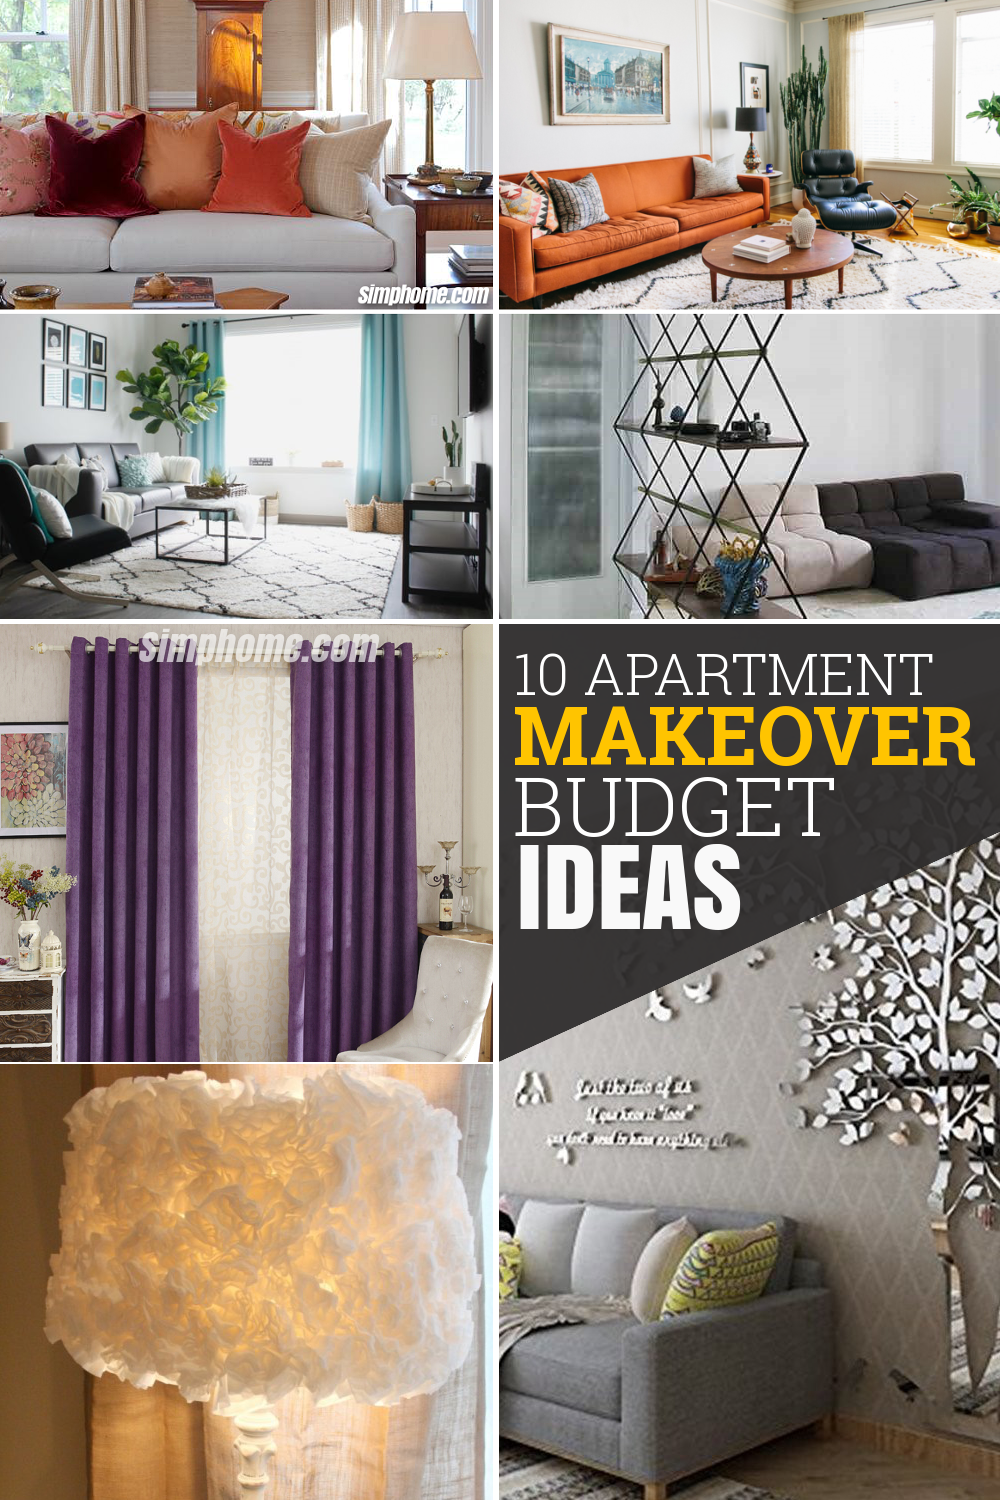 10 Apartment Makeover Budget Ideas via Simphome com Featured Pinterest Image